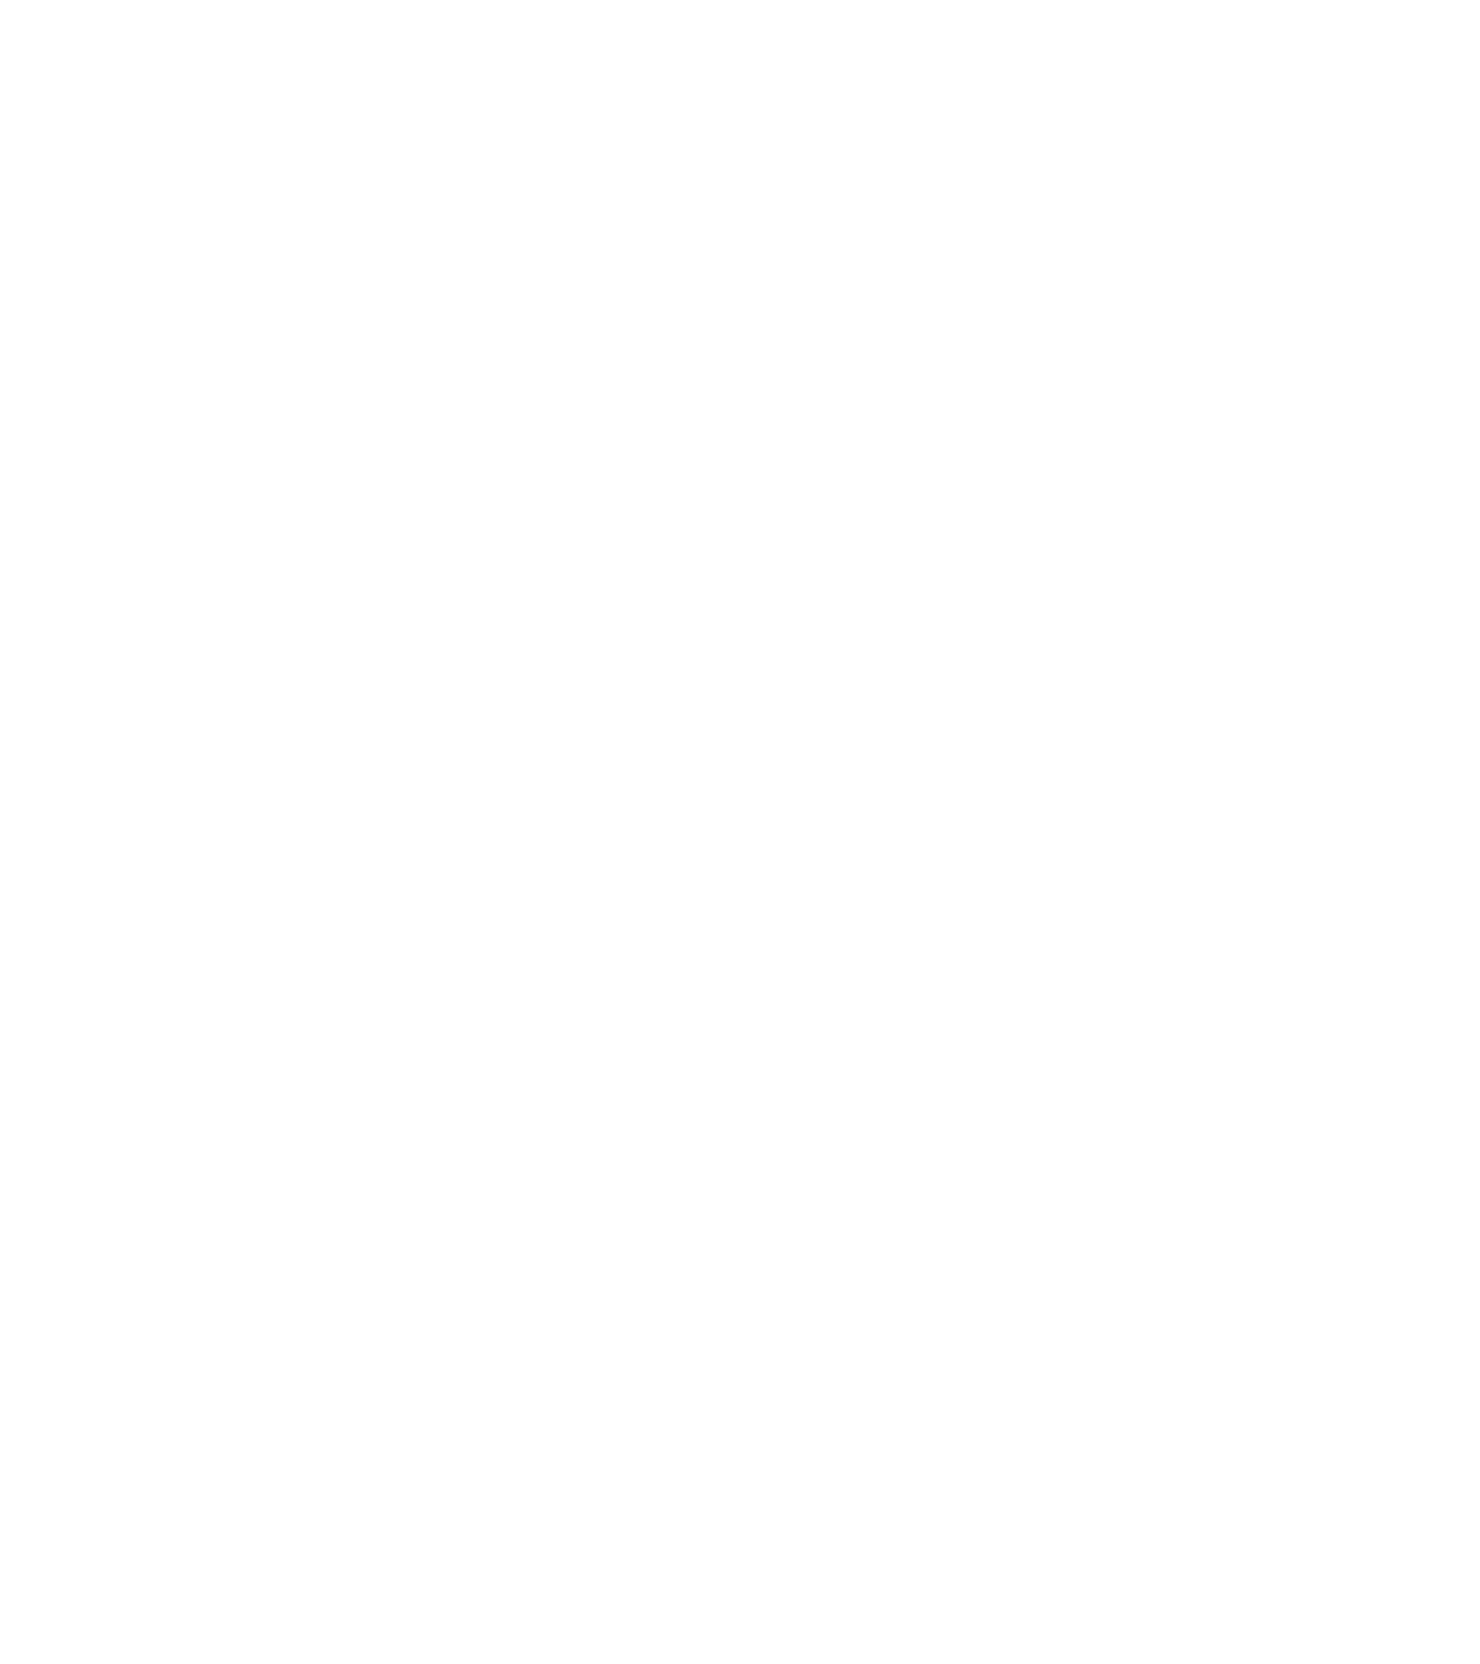 Field Artist Management